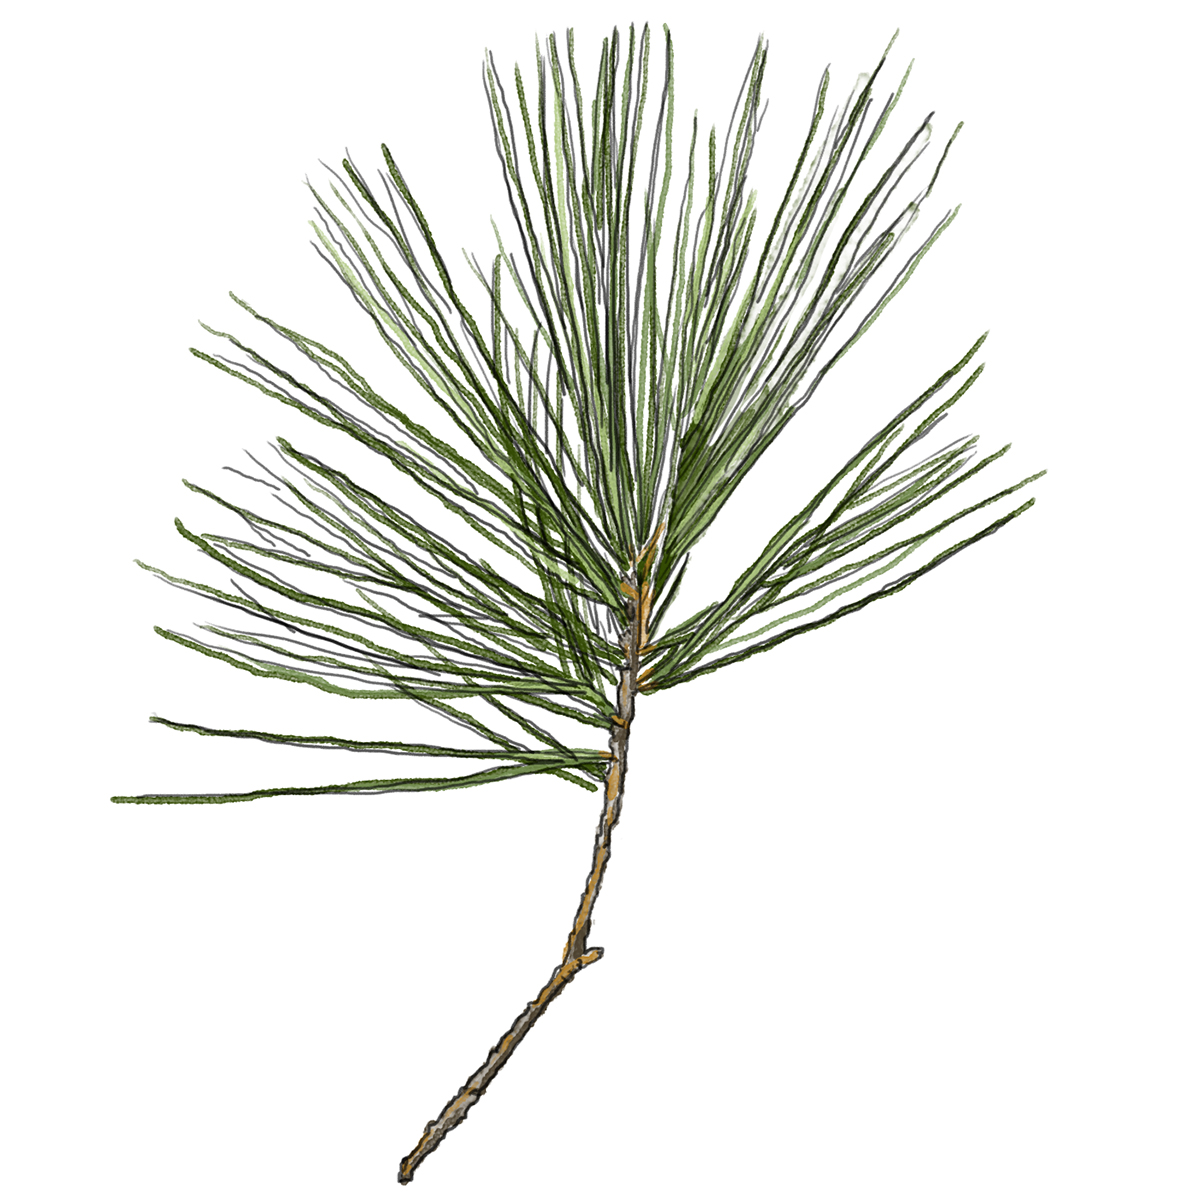 White Pine Needles Illustration by Ellaphant in the Room